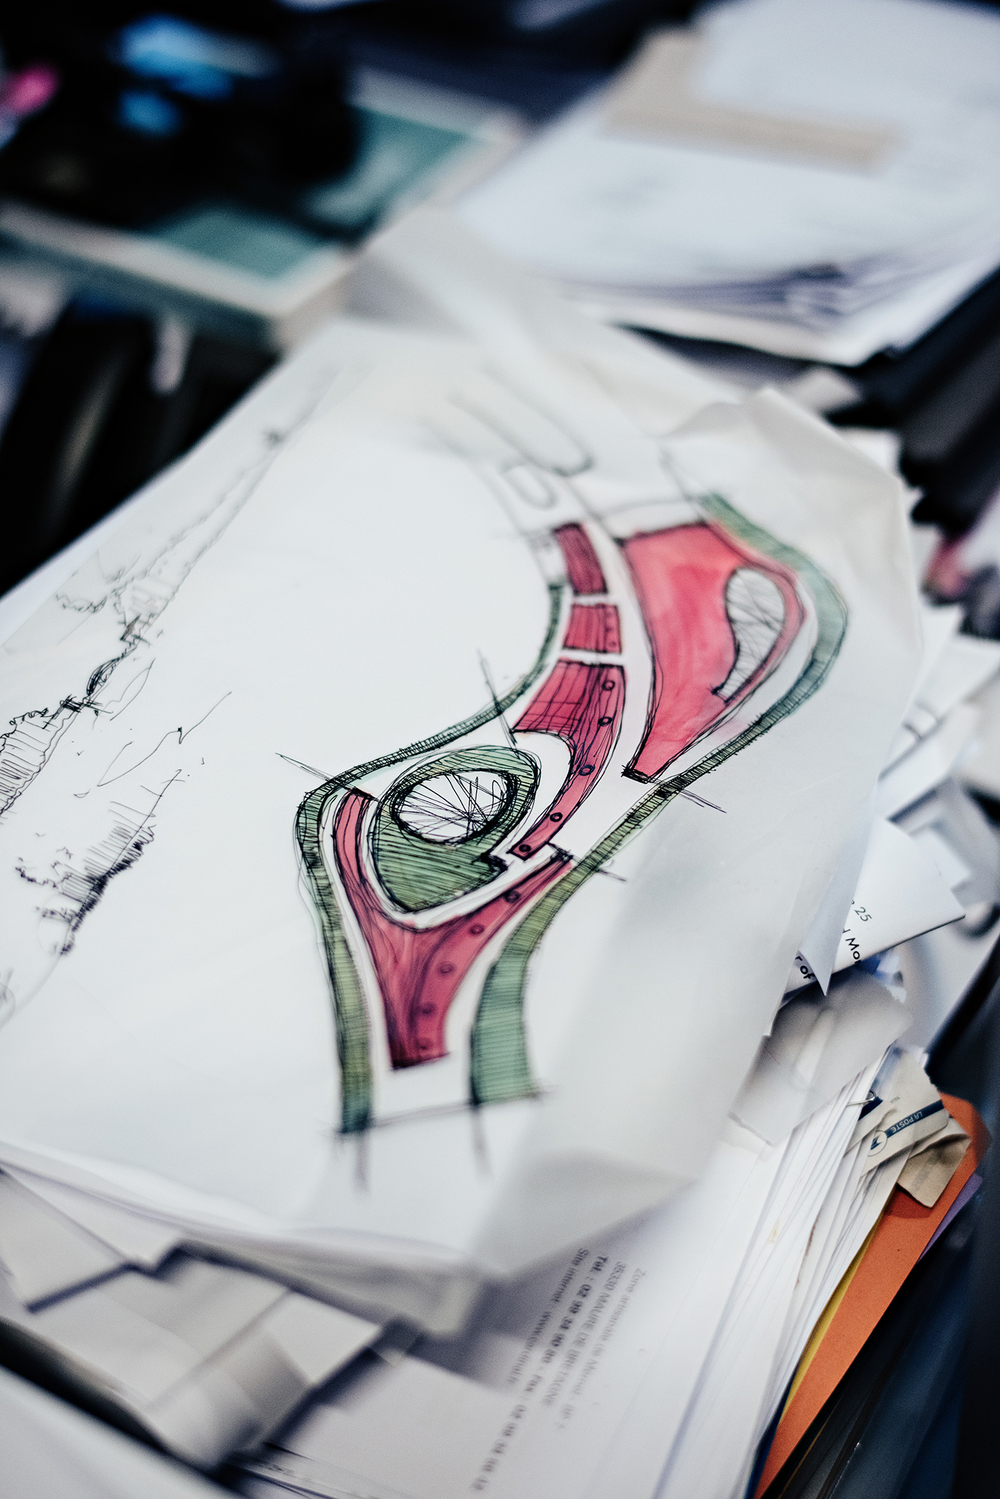 A sketch at Decq's studio.  (Photo: Franck Juery/Surface)